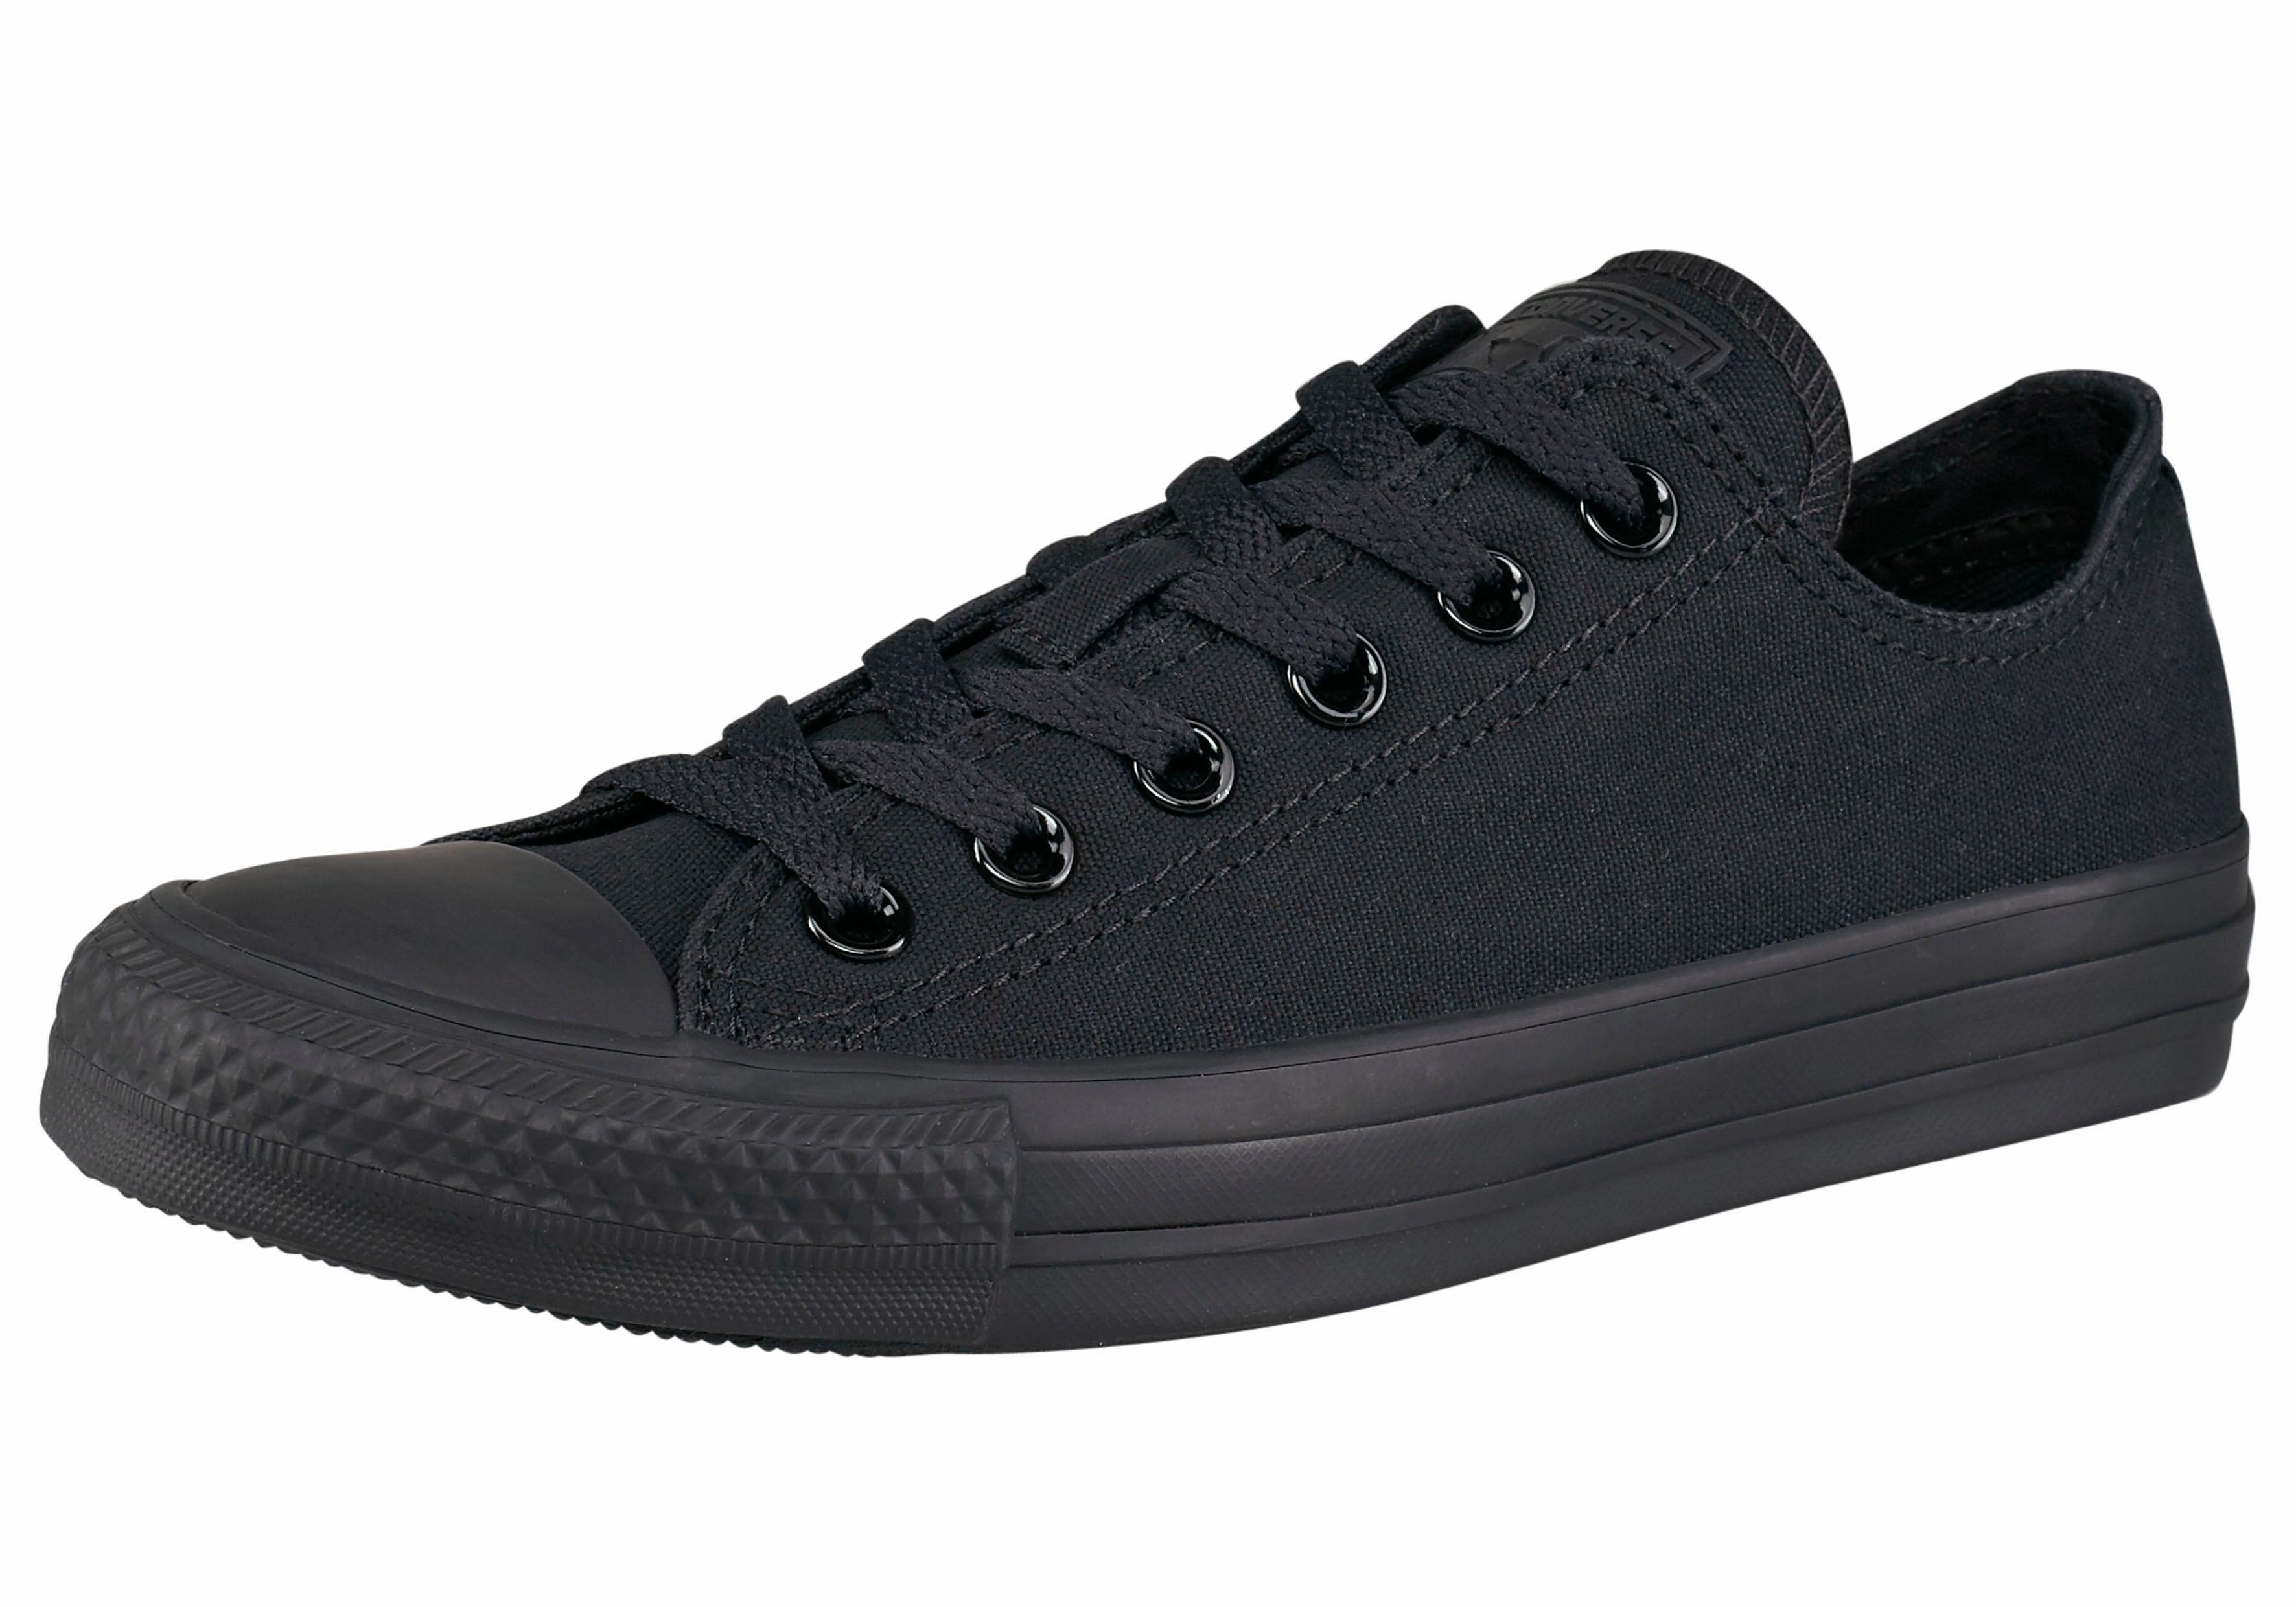 Converse »Chuck Taylor All Star Seasonal Ox Monocrome« Sneaker online kaufen | OTTO